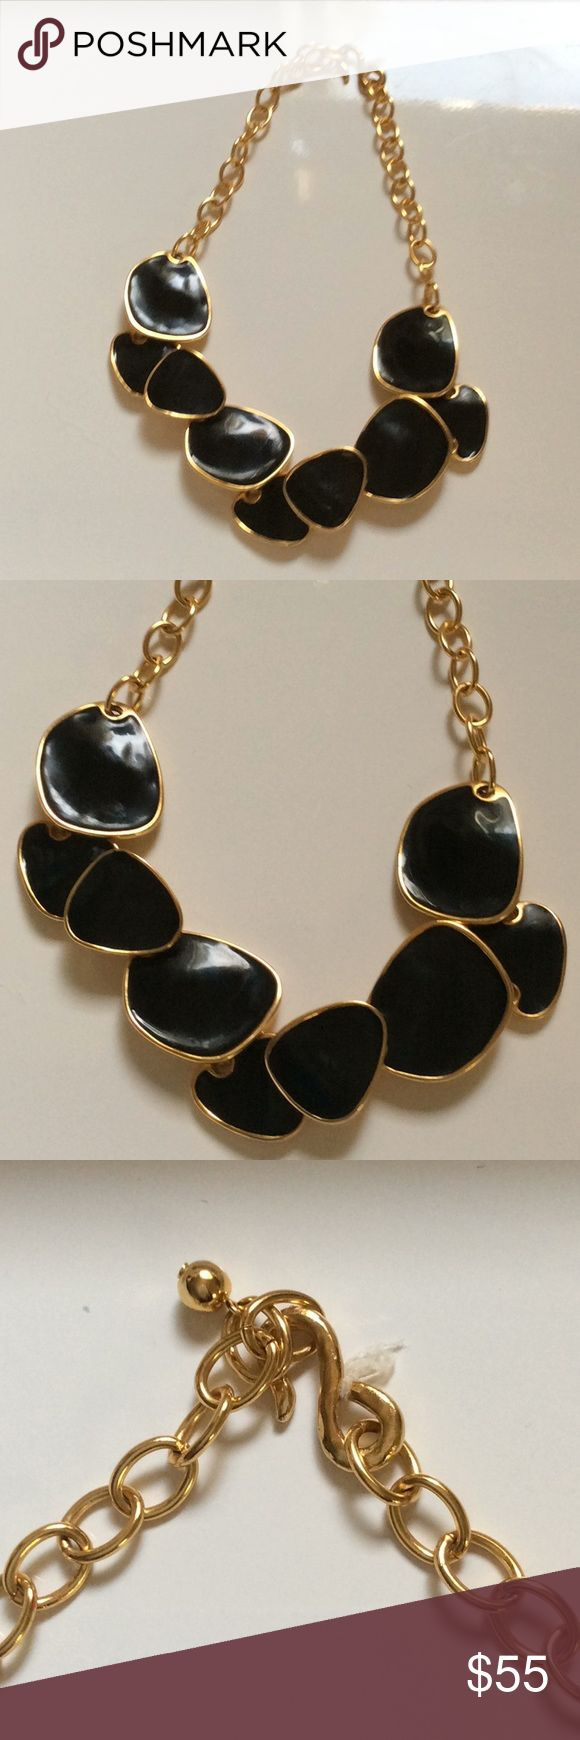 Kenneth Jay Lane black enamel necklace In excellent condition, only worn once! Stunning and classic piece! 22K plated gold and black enamel. Adjustable length. Well-made, has a nice solid weight to it. Bought from Bloomingdales department store. Made in the USA. And KJL stamp. Kenneth Jay Lane Jewelry Necklaces